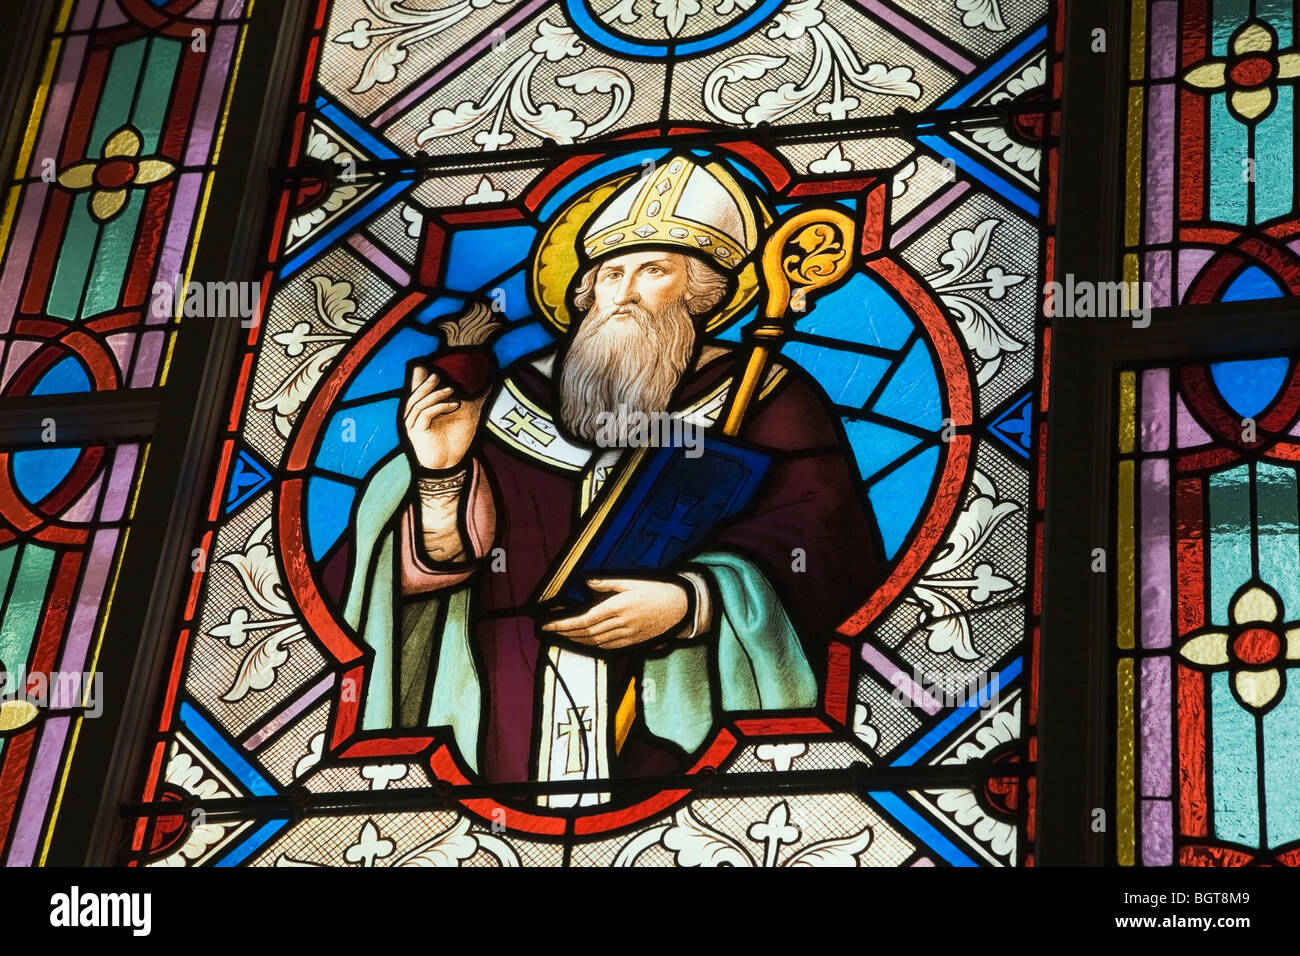 Stained Glass Window Decorated With A Religious Figure Saint Francois De Sales Church Laval Quebec Canada